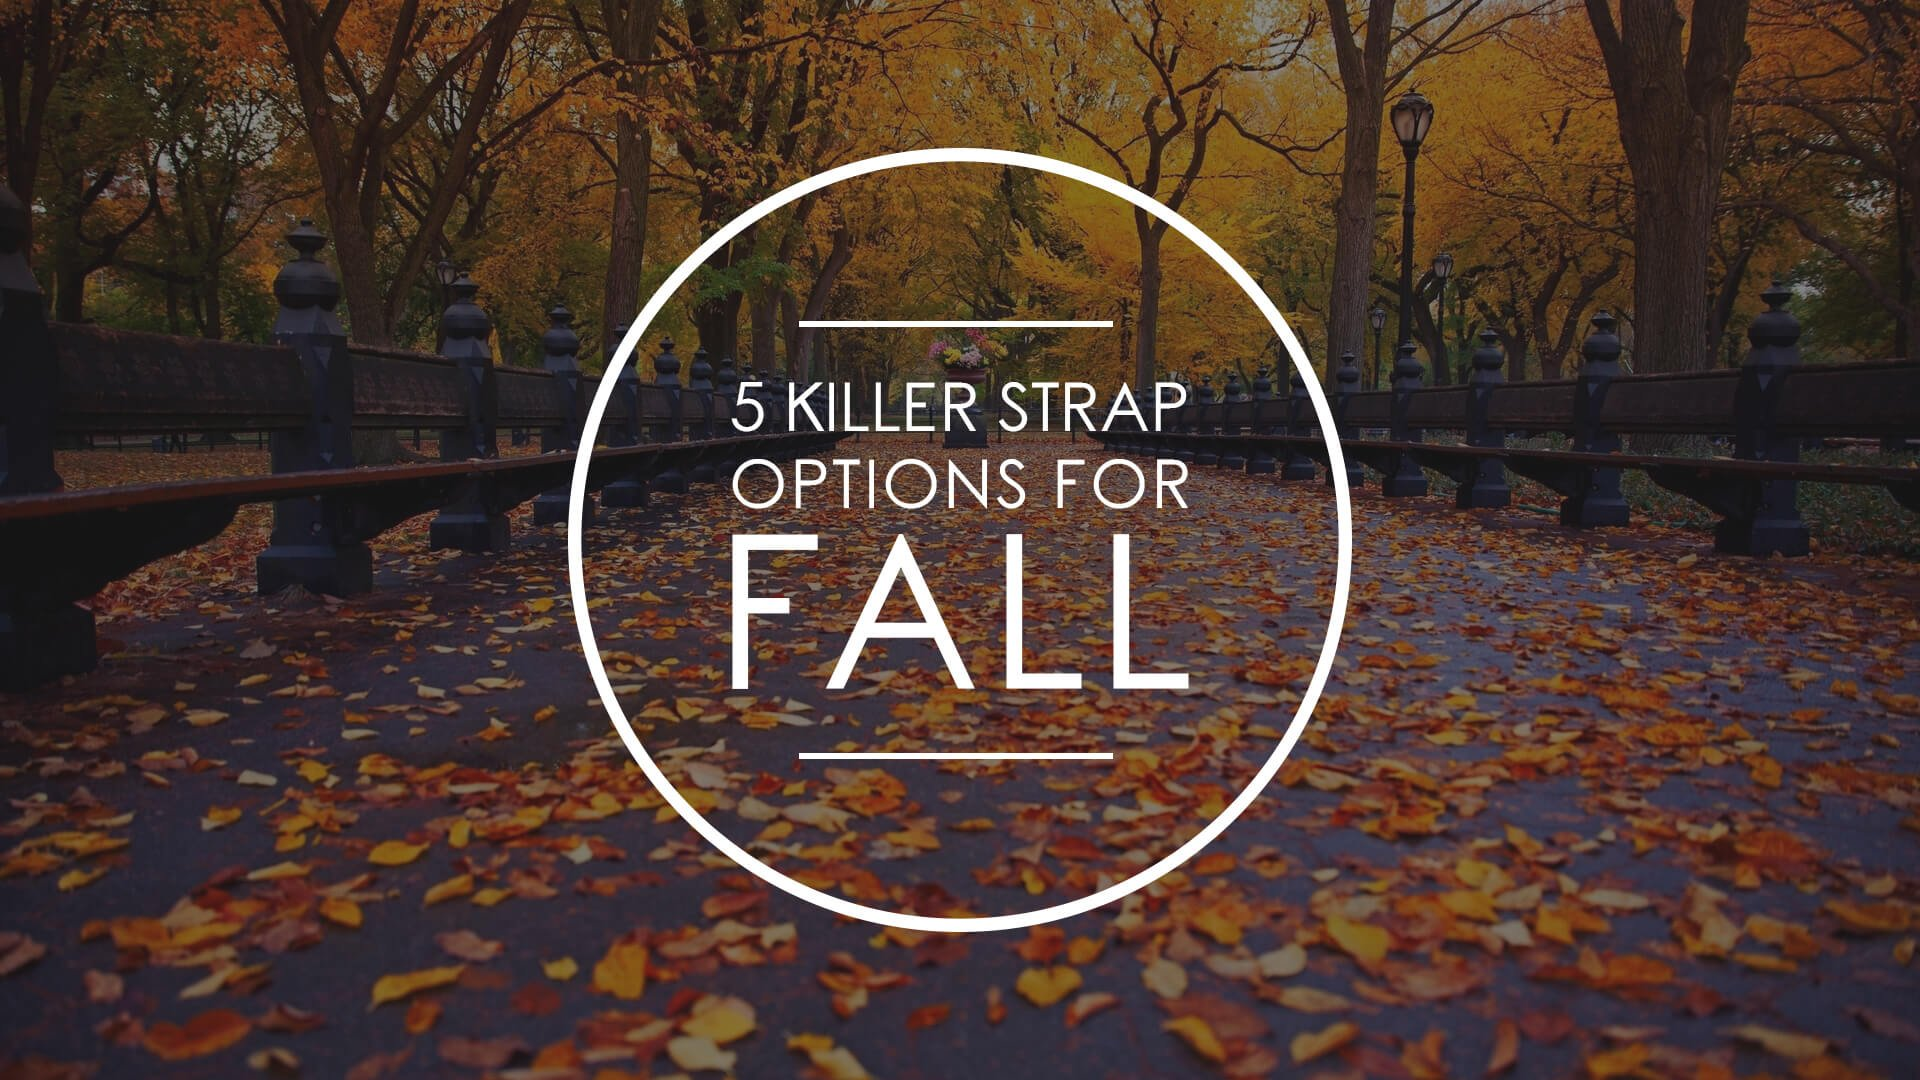 Watch 101: 5 Killer Strap Options for Fall